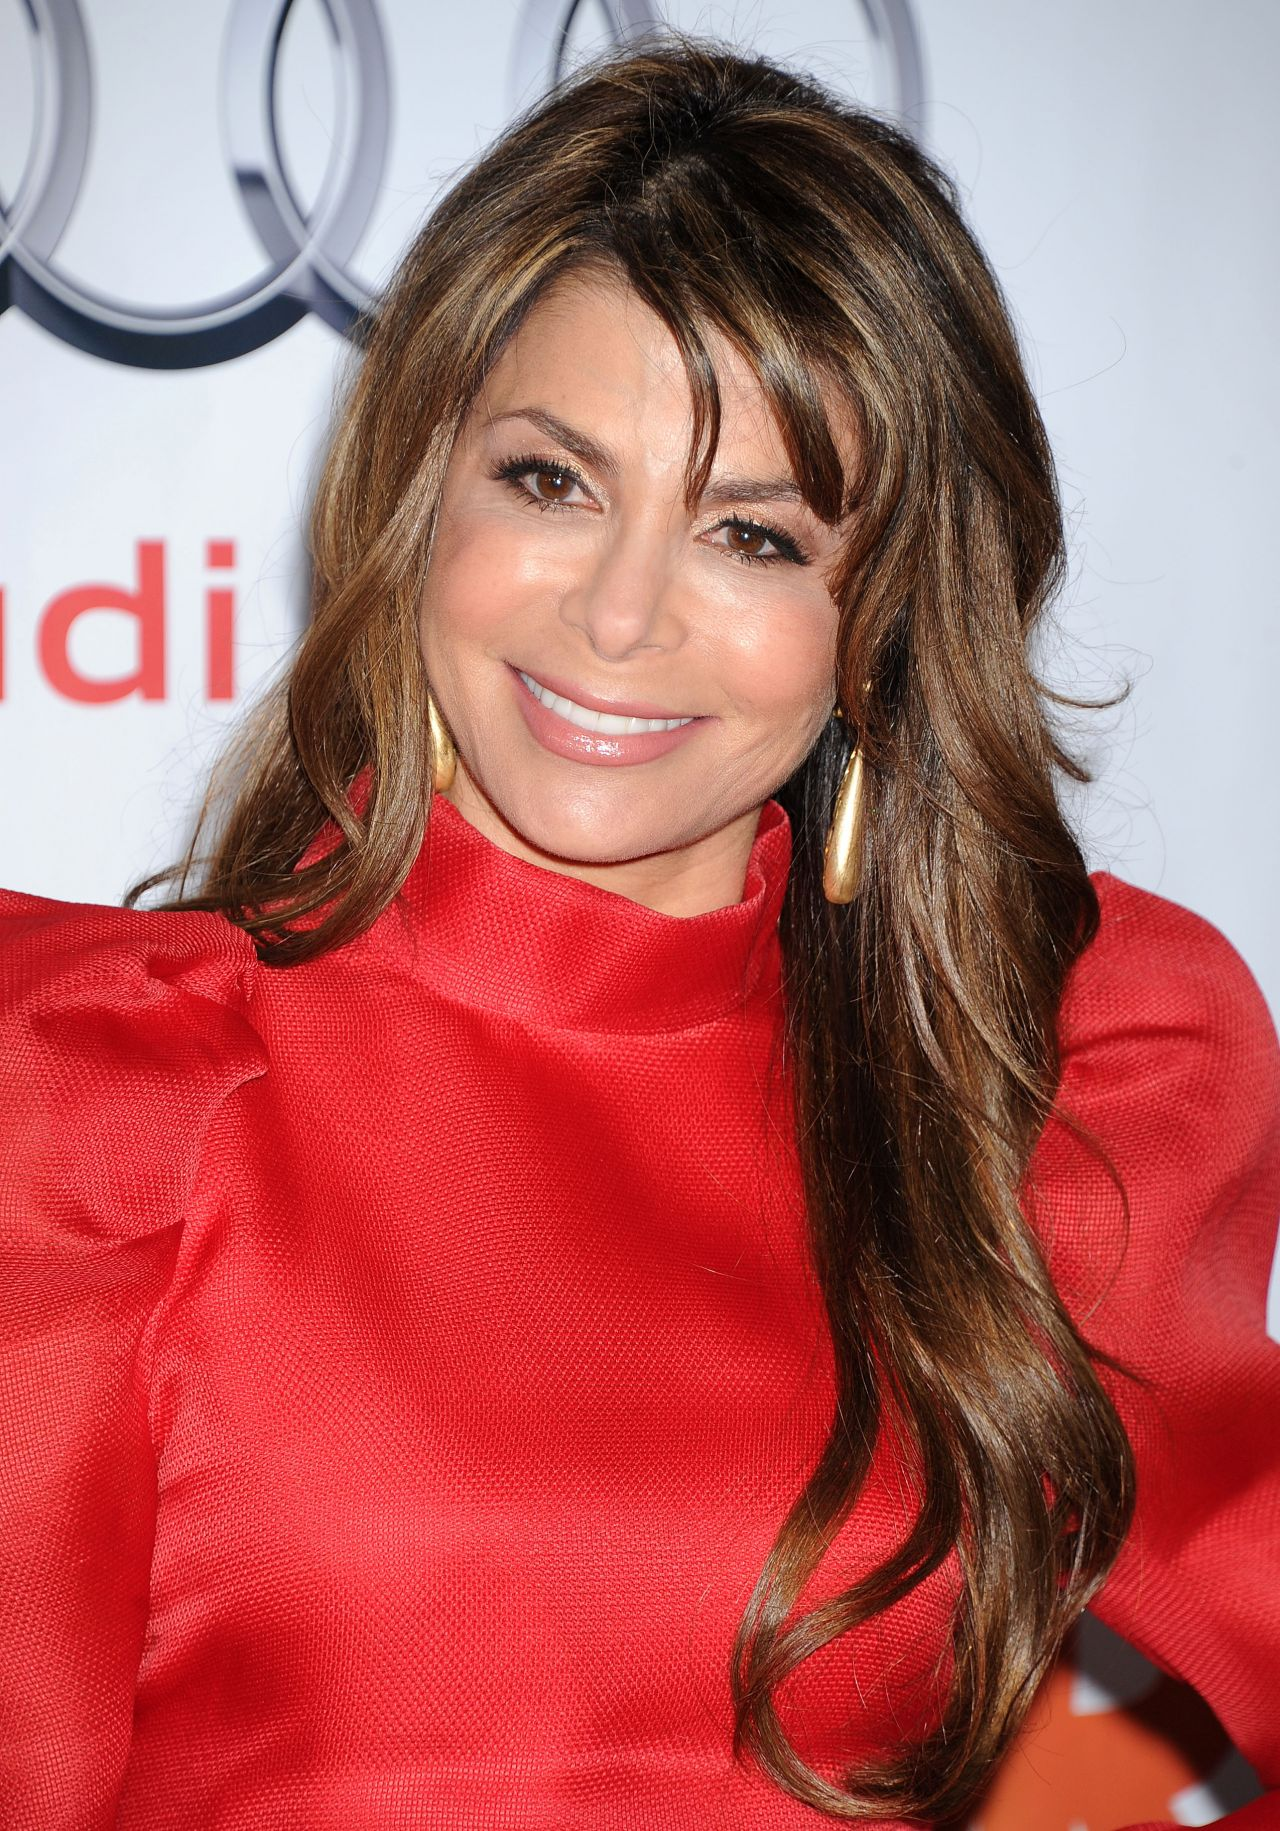 Paula Abdul Joins 'So You Think You Can Dance' as Judge